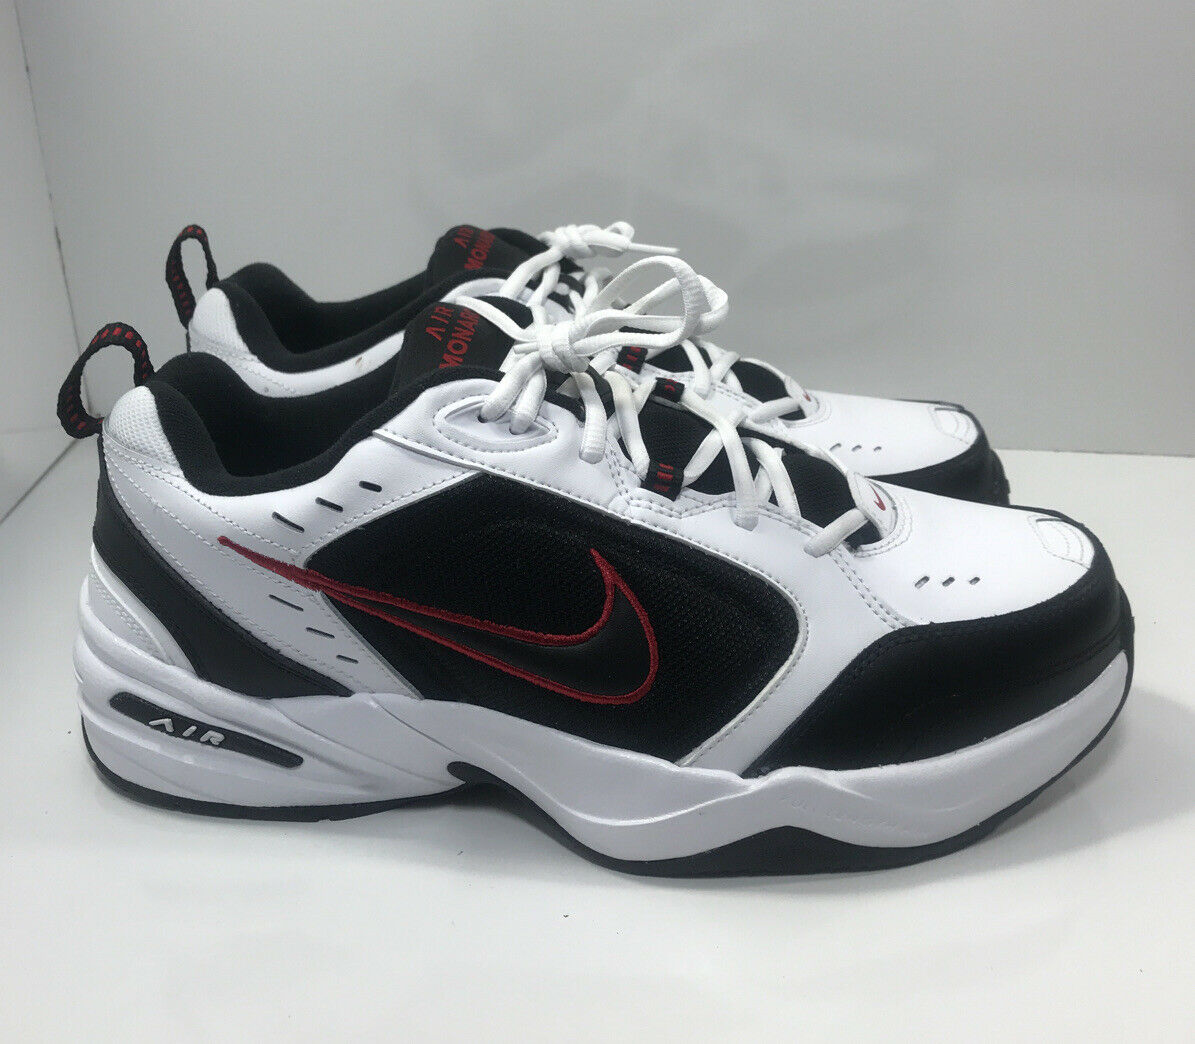 Red//White//Black Mens Size 9 Shoes Air Monarch IV Extra Wide 416355-101 New